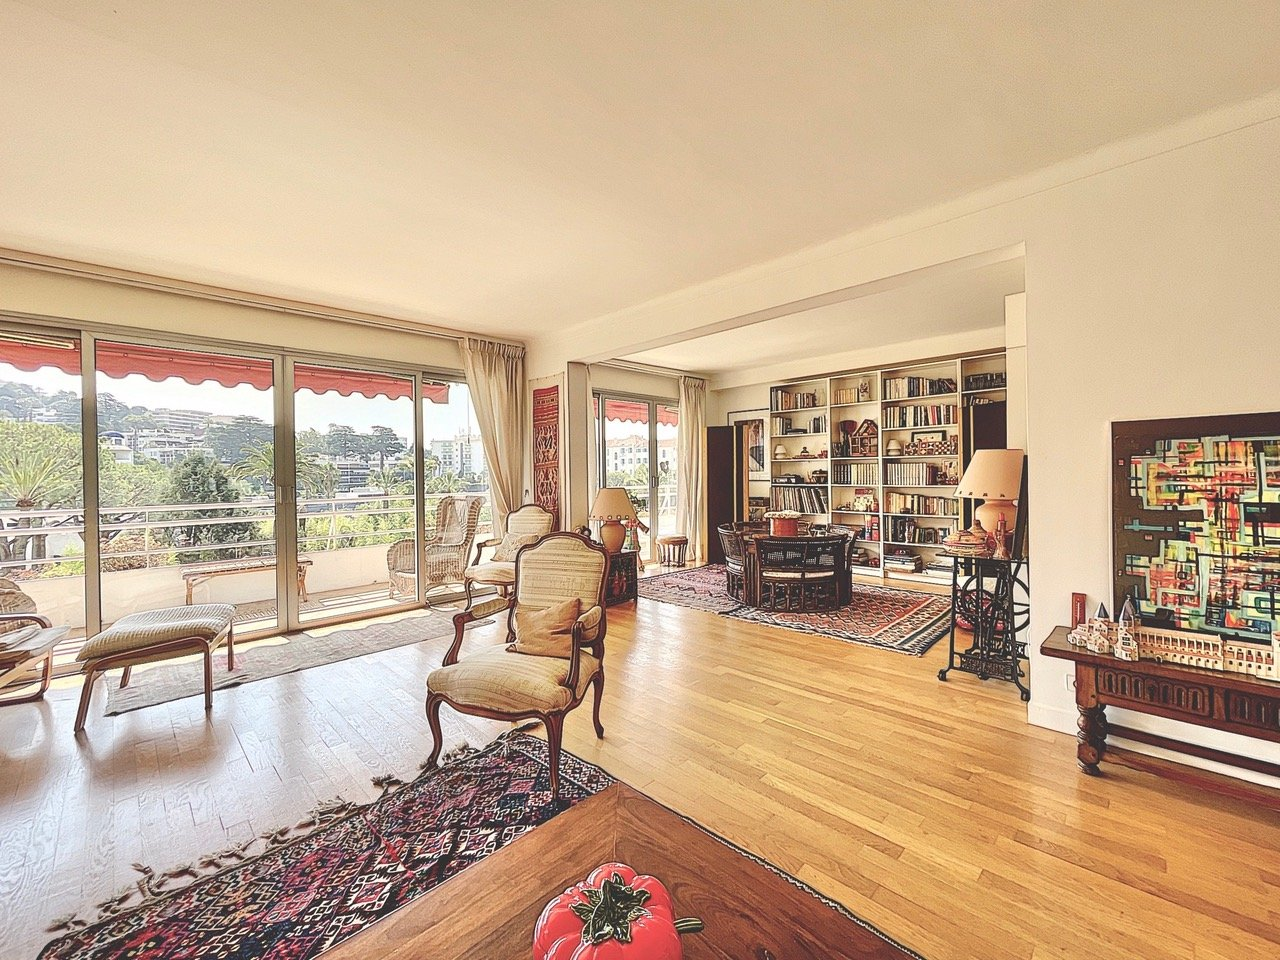 Large 2/3 bedroom of 140 Sqm with 32 Sqm of terrace